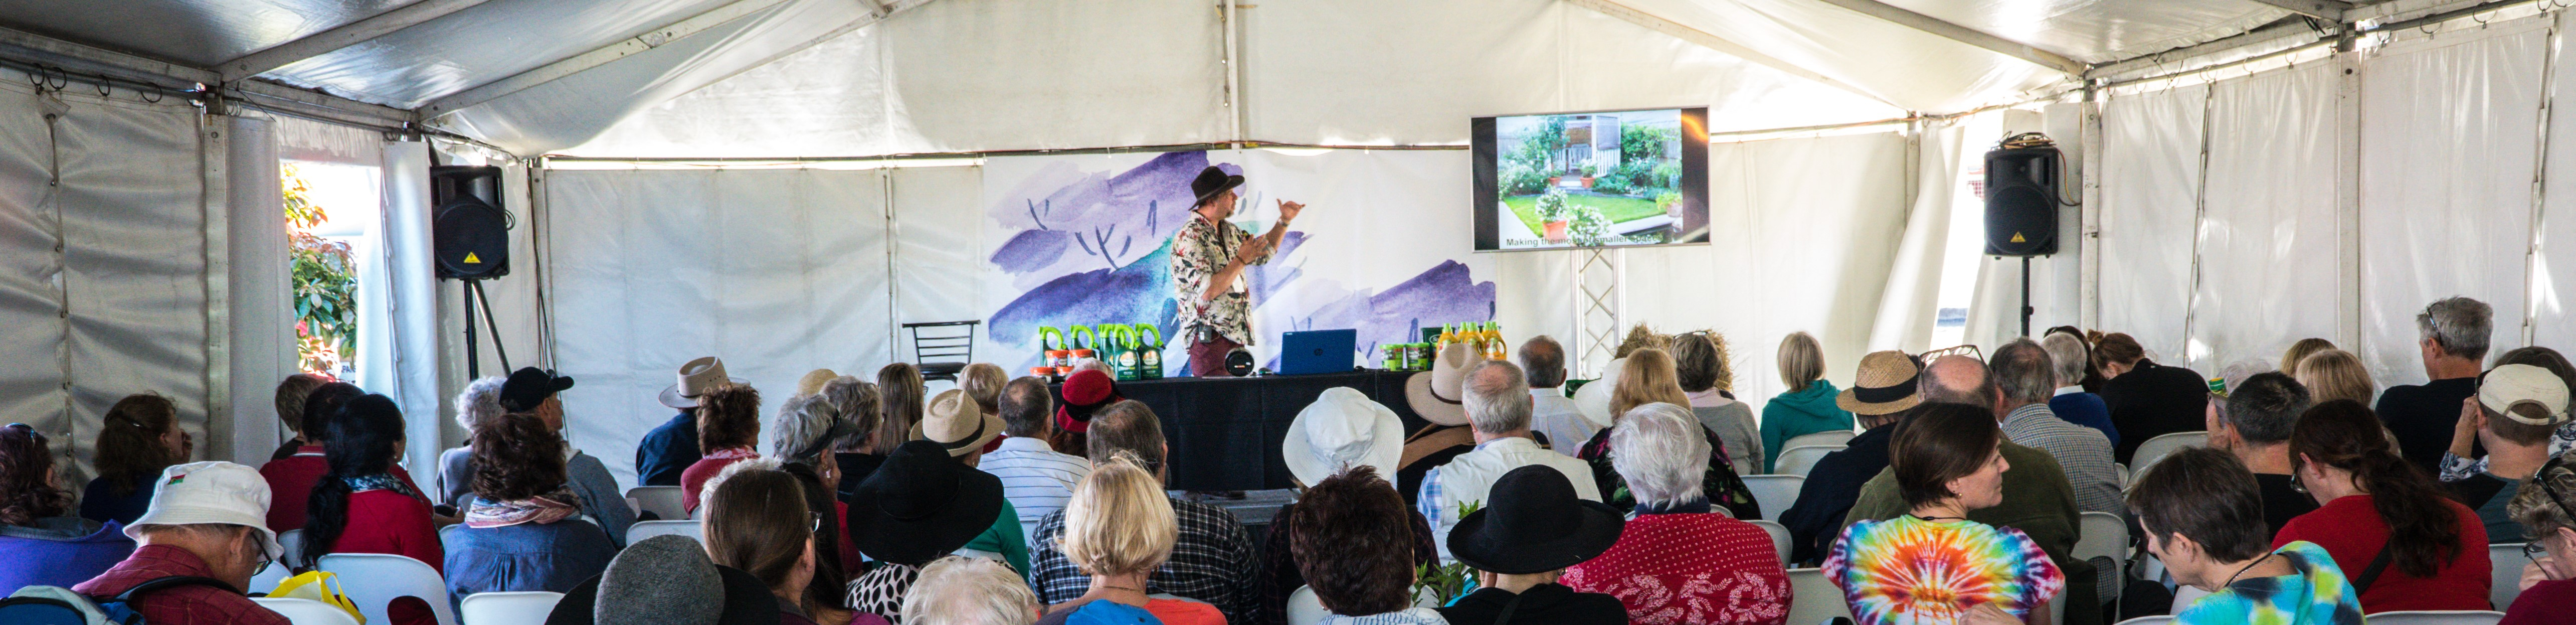 Speaker at 2018 Qld Garden Expo